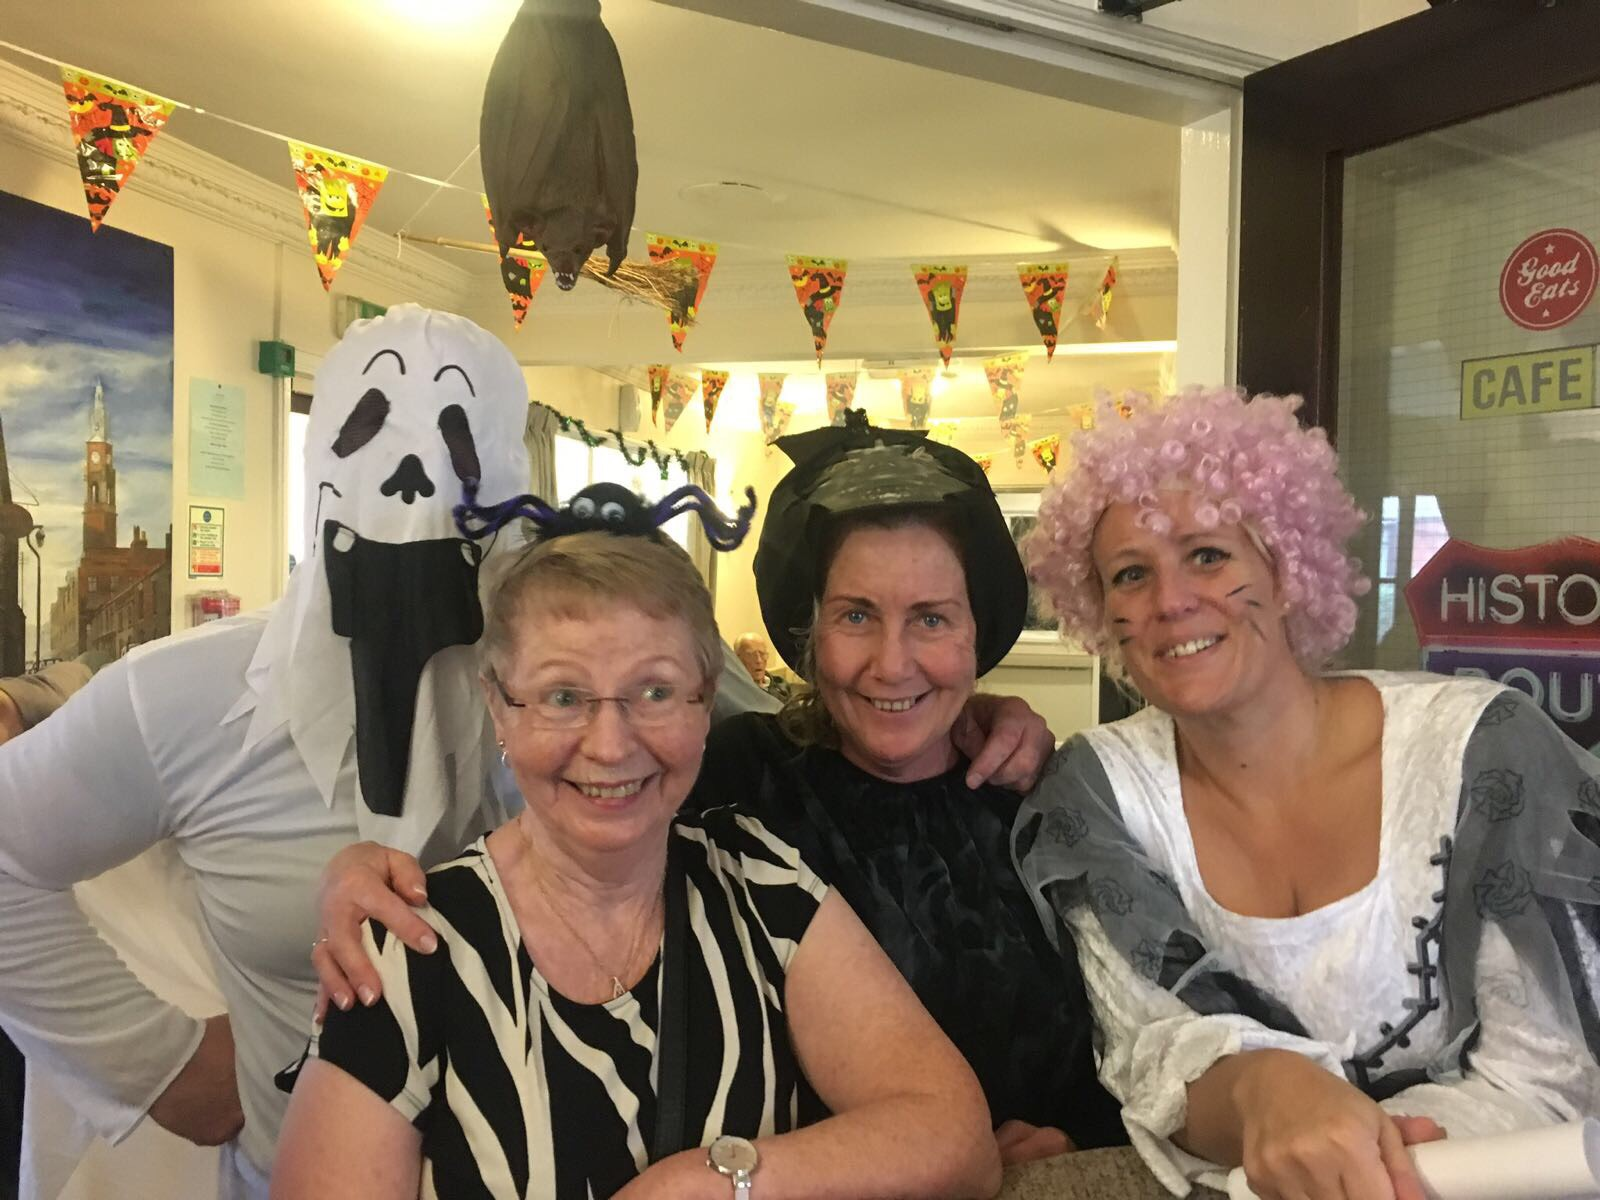 Halloween Fancy Dress at Elizabeth Court Care Centre: Key Healthcare is dedicated to caring for elderly residents in safe. We have multiple dementia care homes including our care home middlesbrough, our care home St. Helen and care home saltburn. We excel in monitoring and improving care levels.